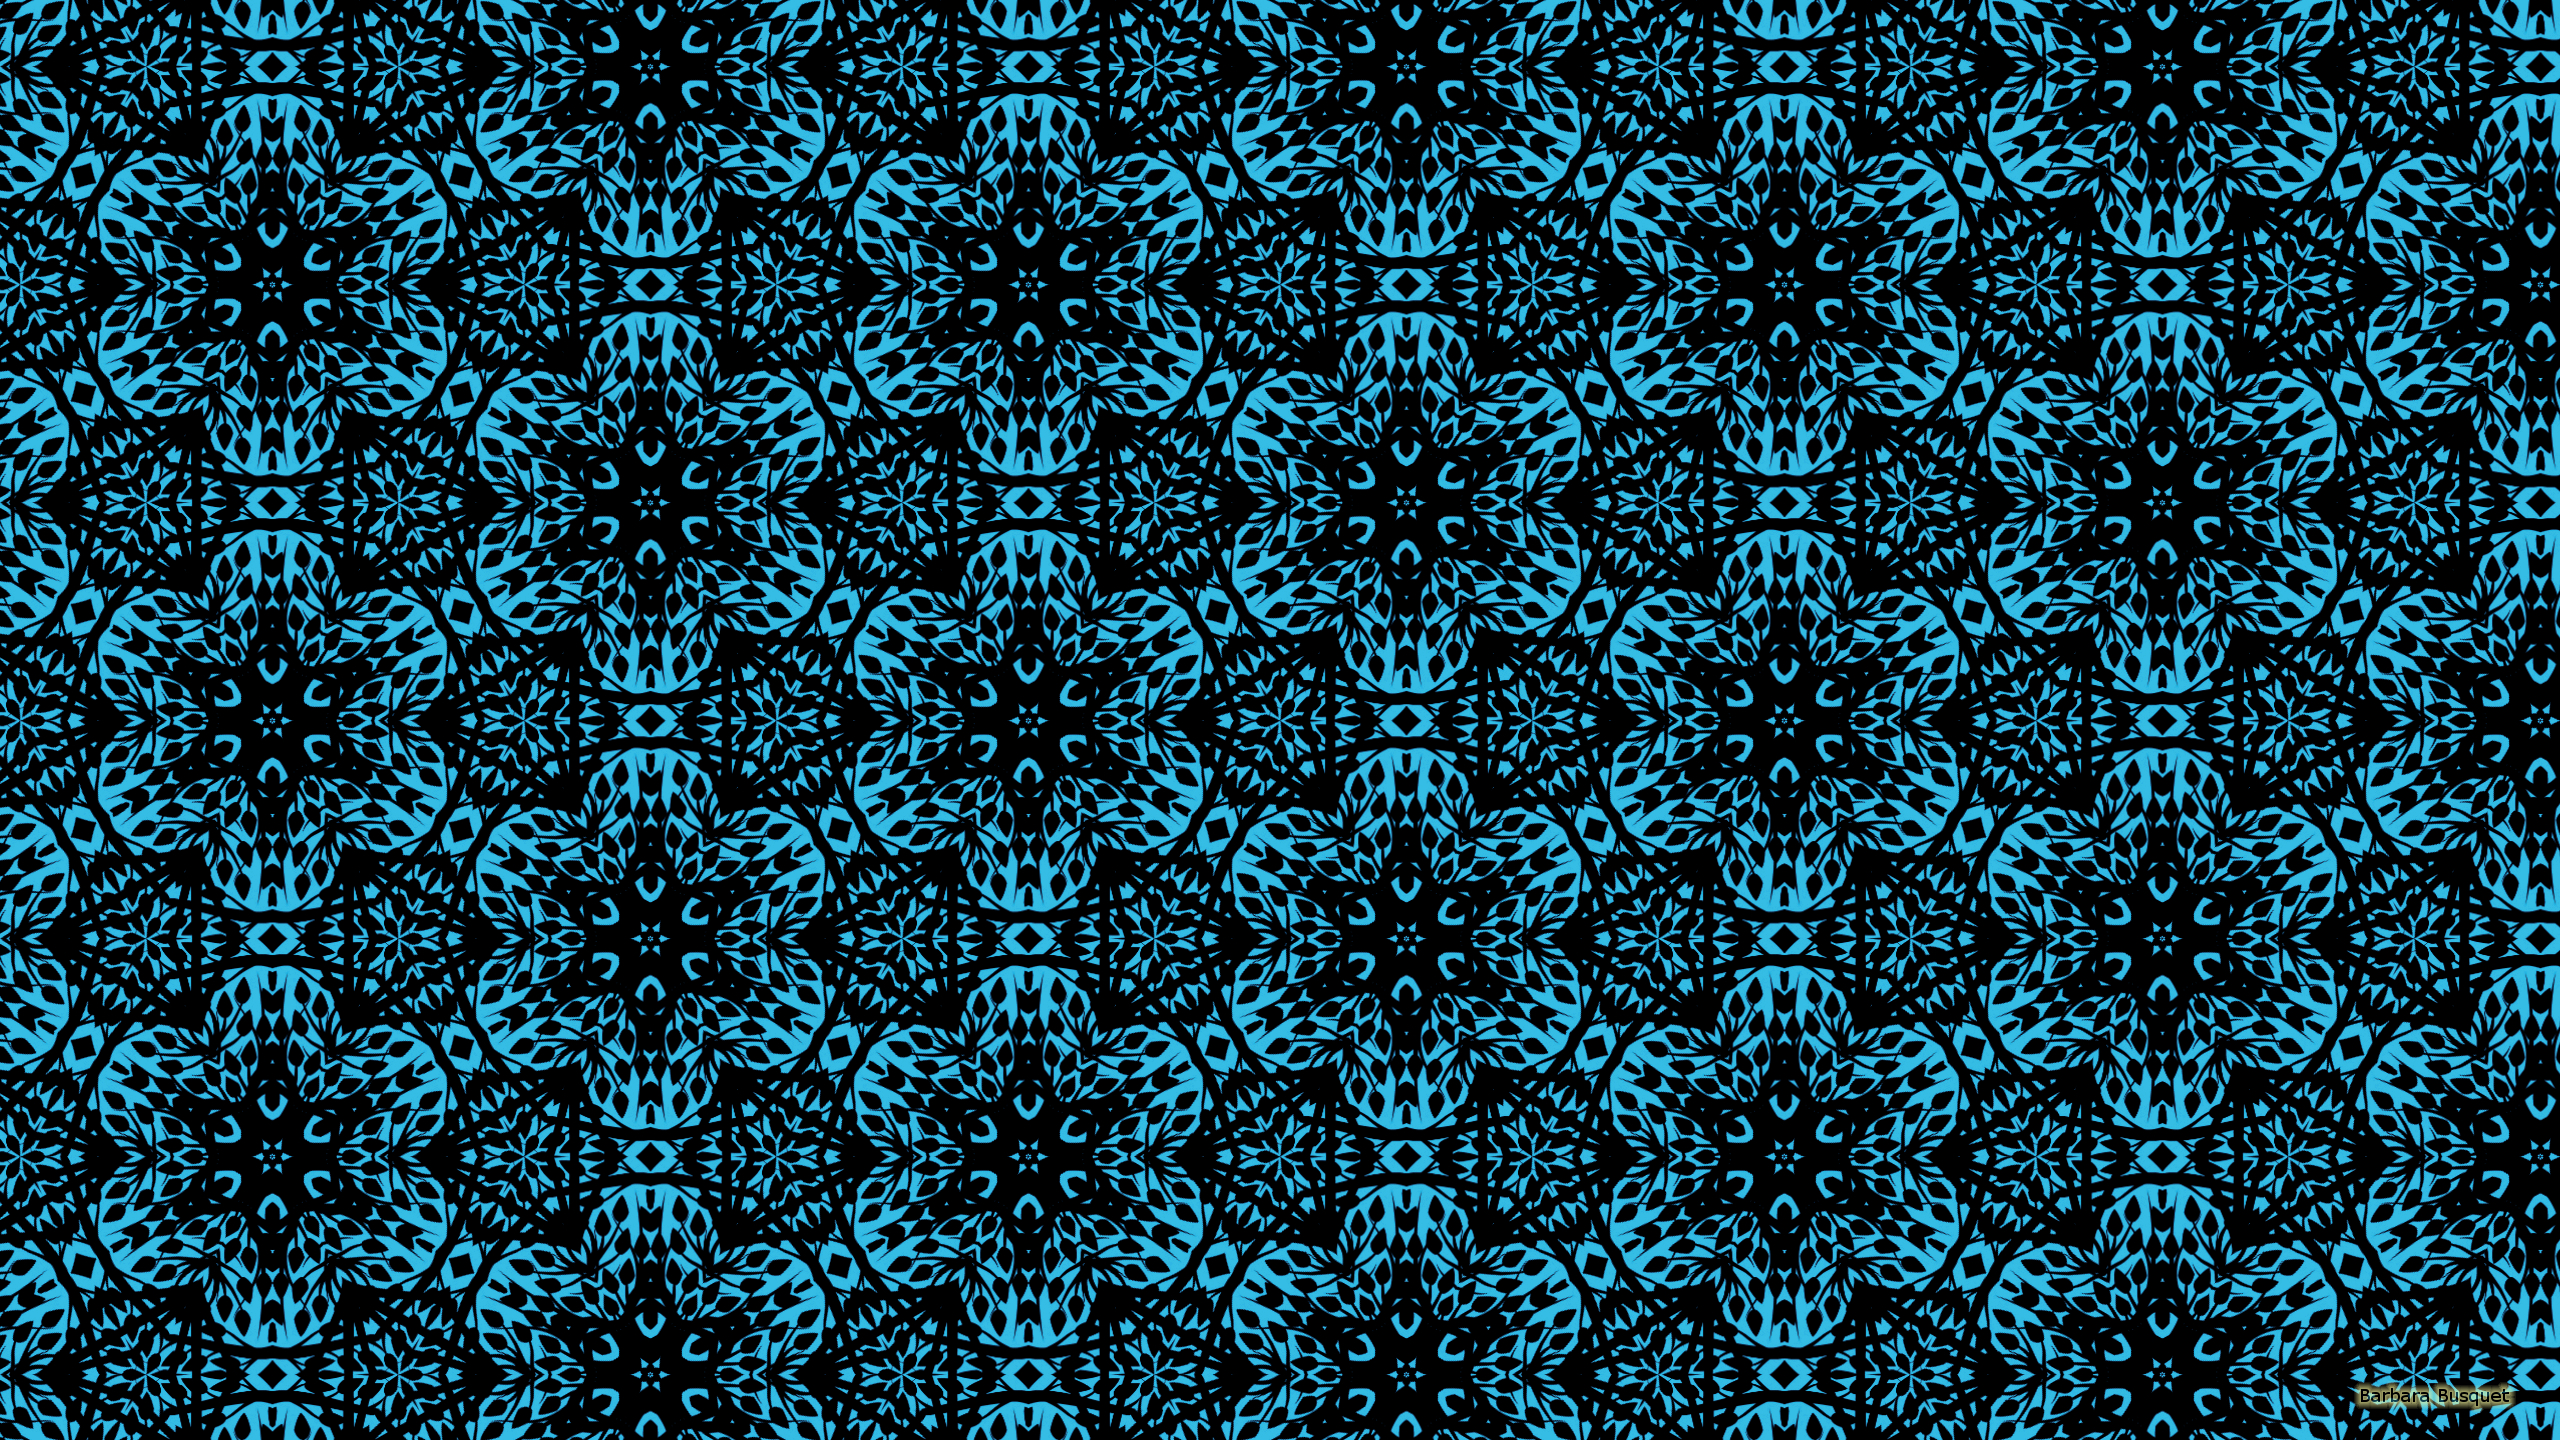 Hd wallpaper pattern - Blue Hd Wallpaper With A Black Pattern